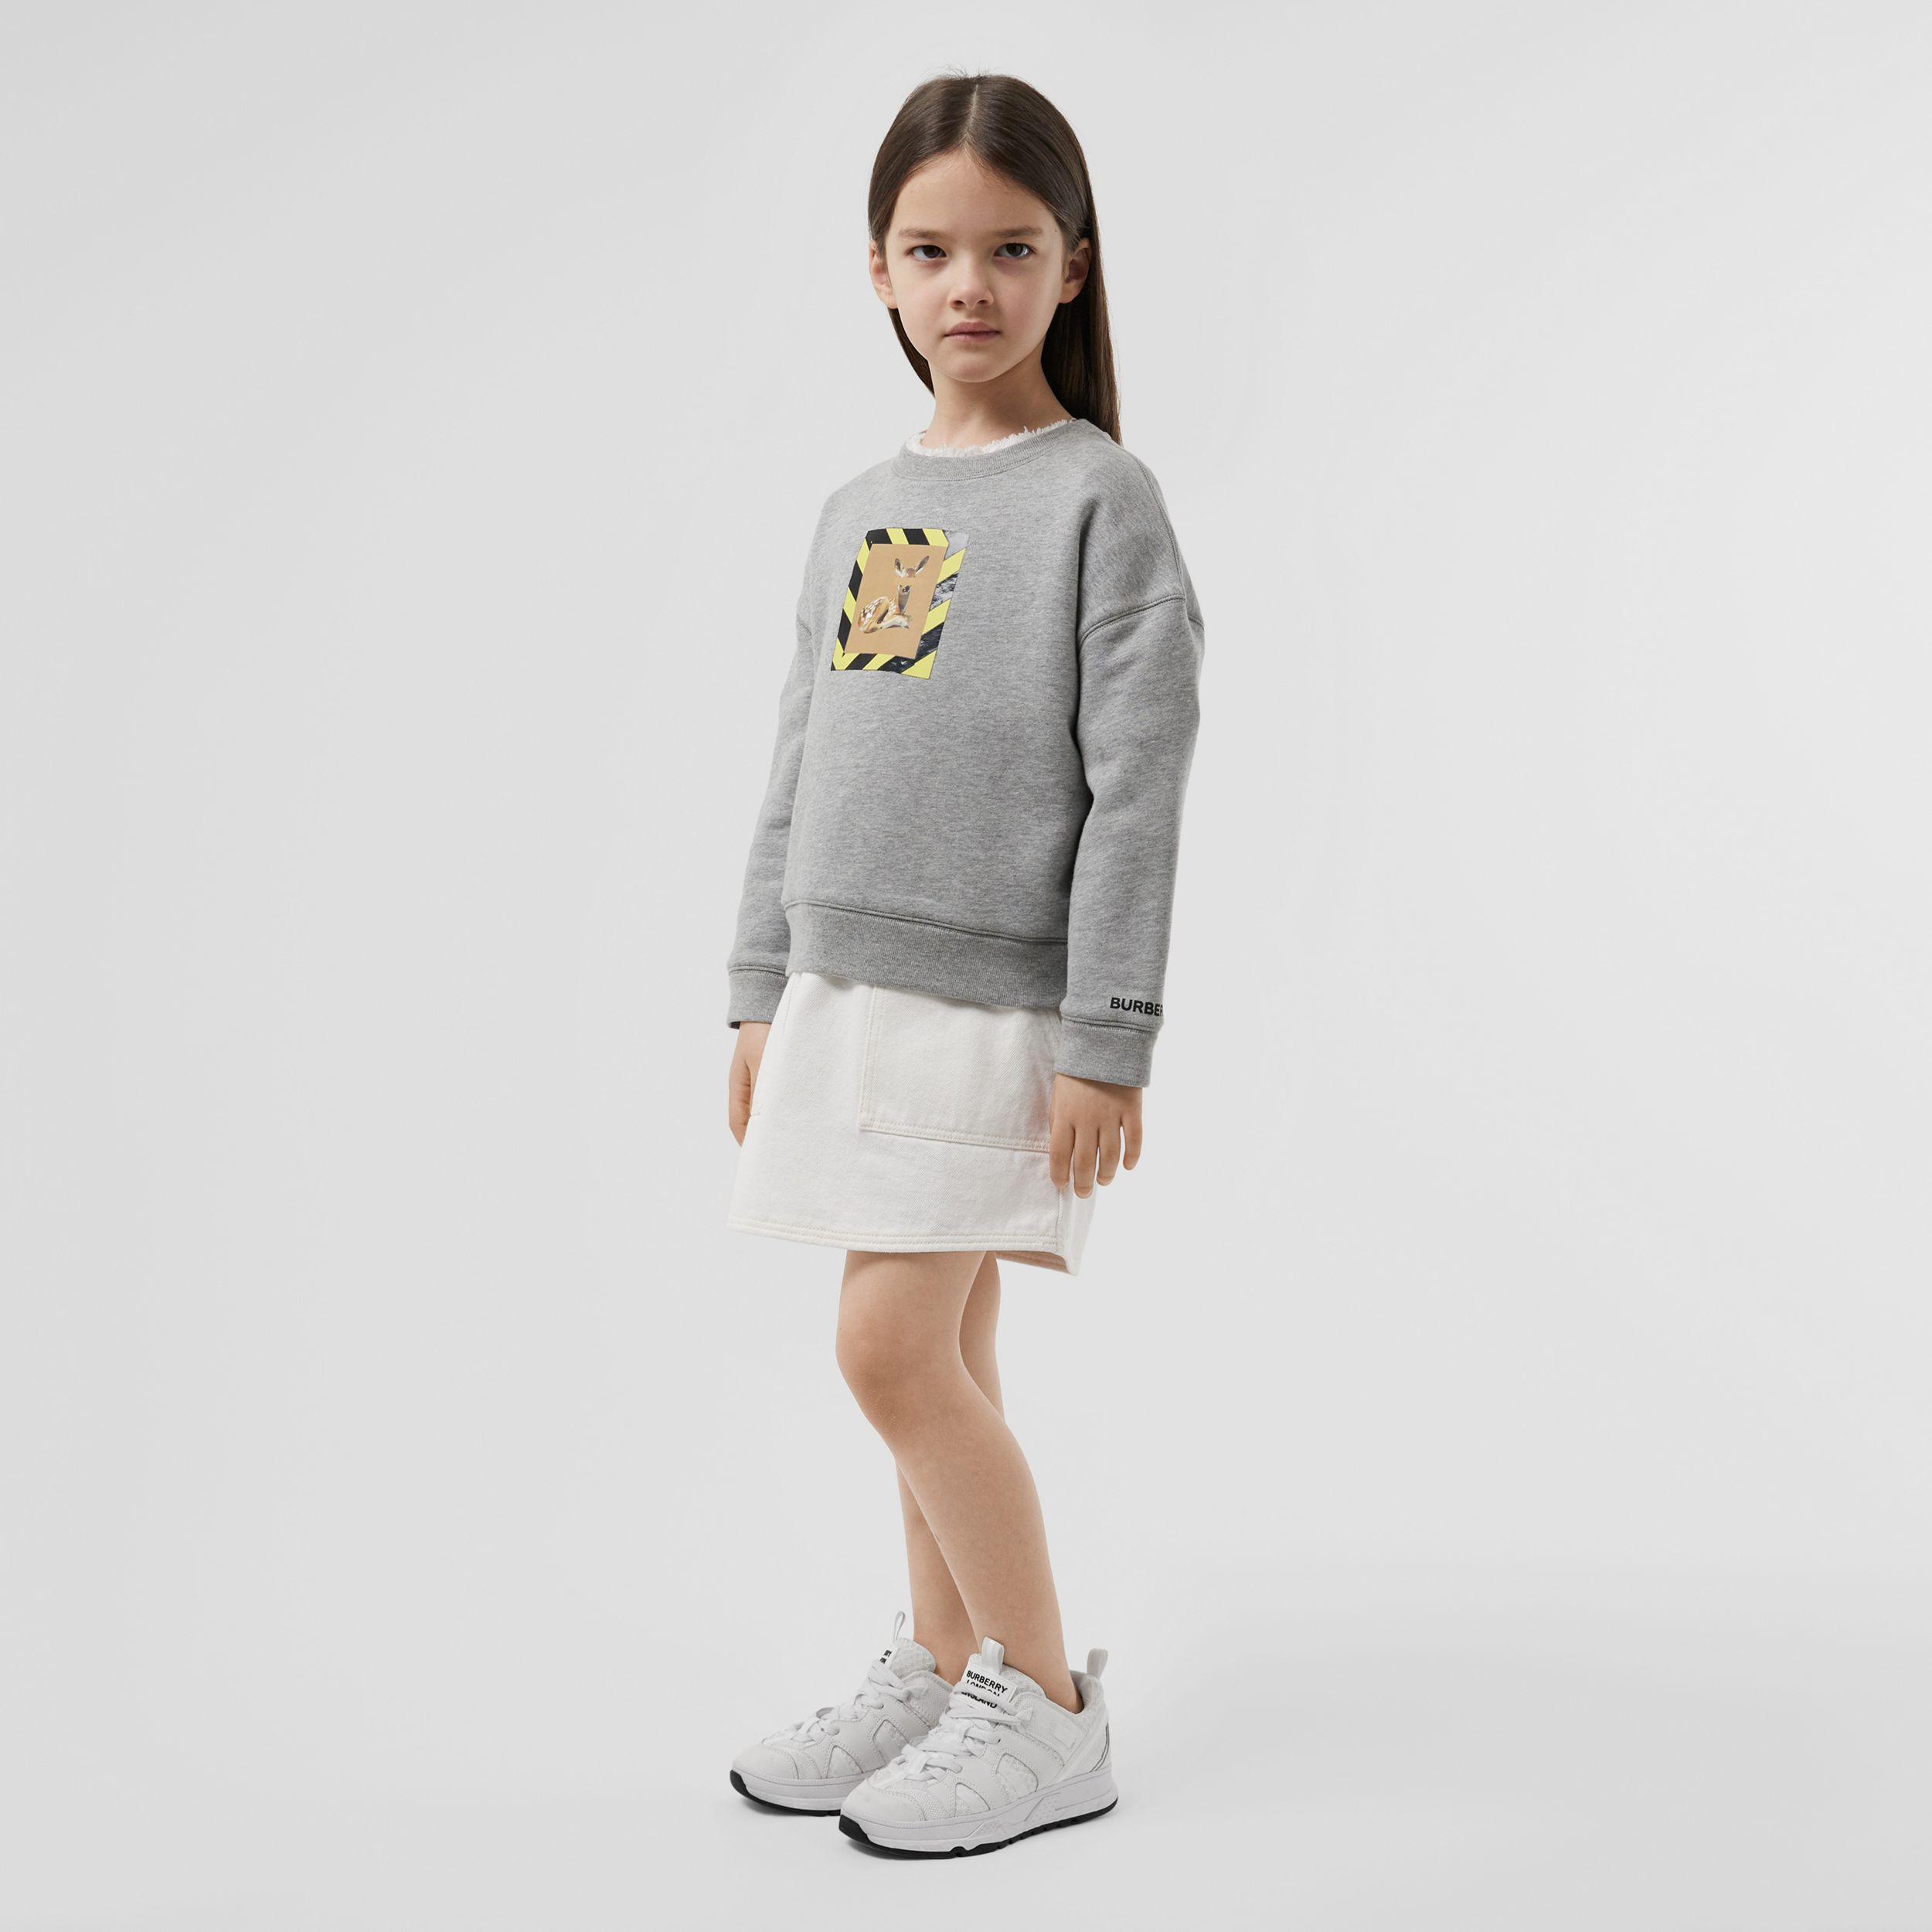 Deer Print Cotton Sweatshirt in Grey Melange | Burberry - 3